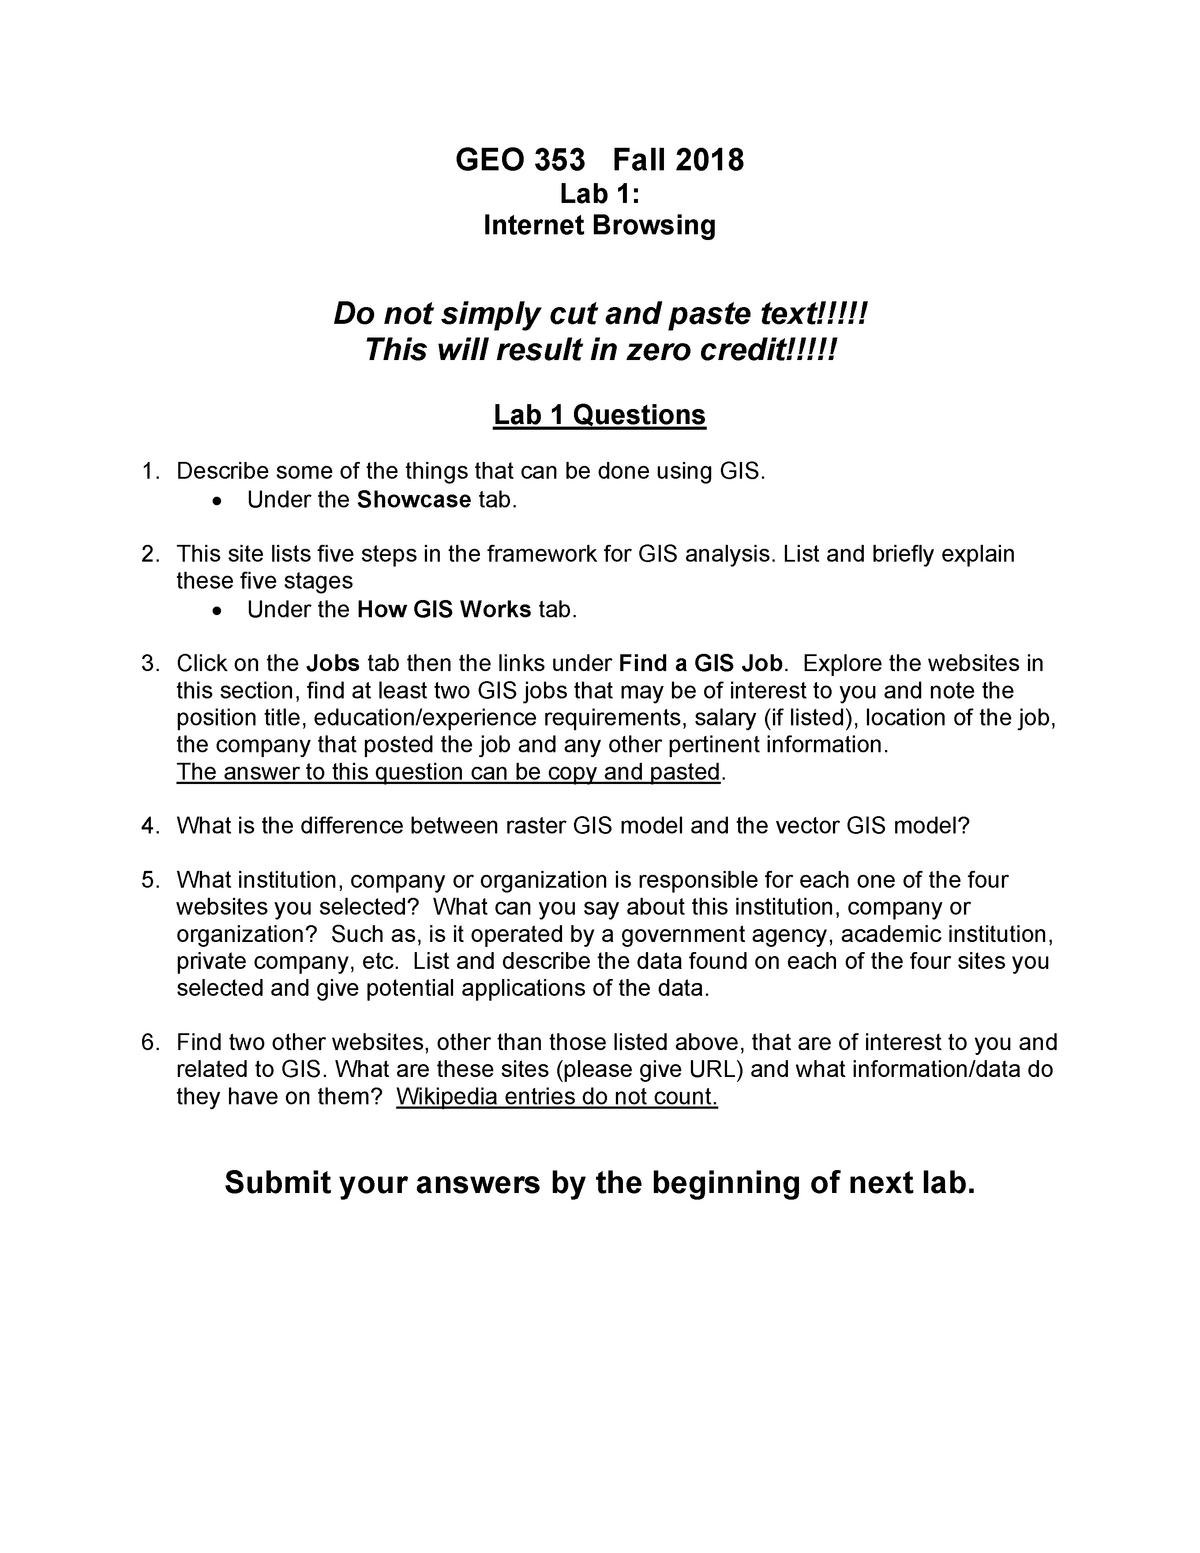 GEO 353 Lab 1 Questions - lecture - GEO 353: Geographic